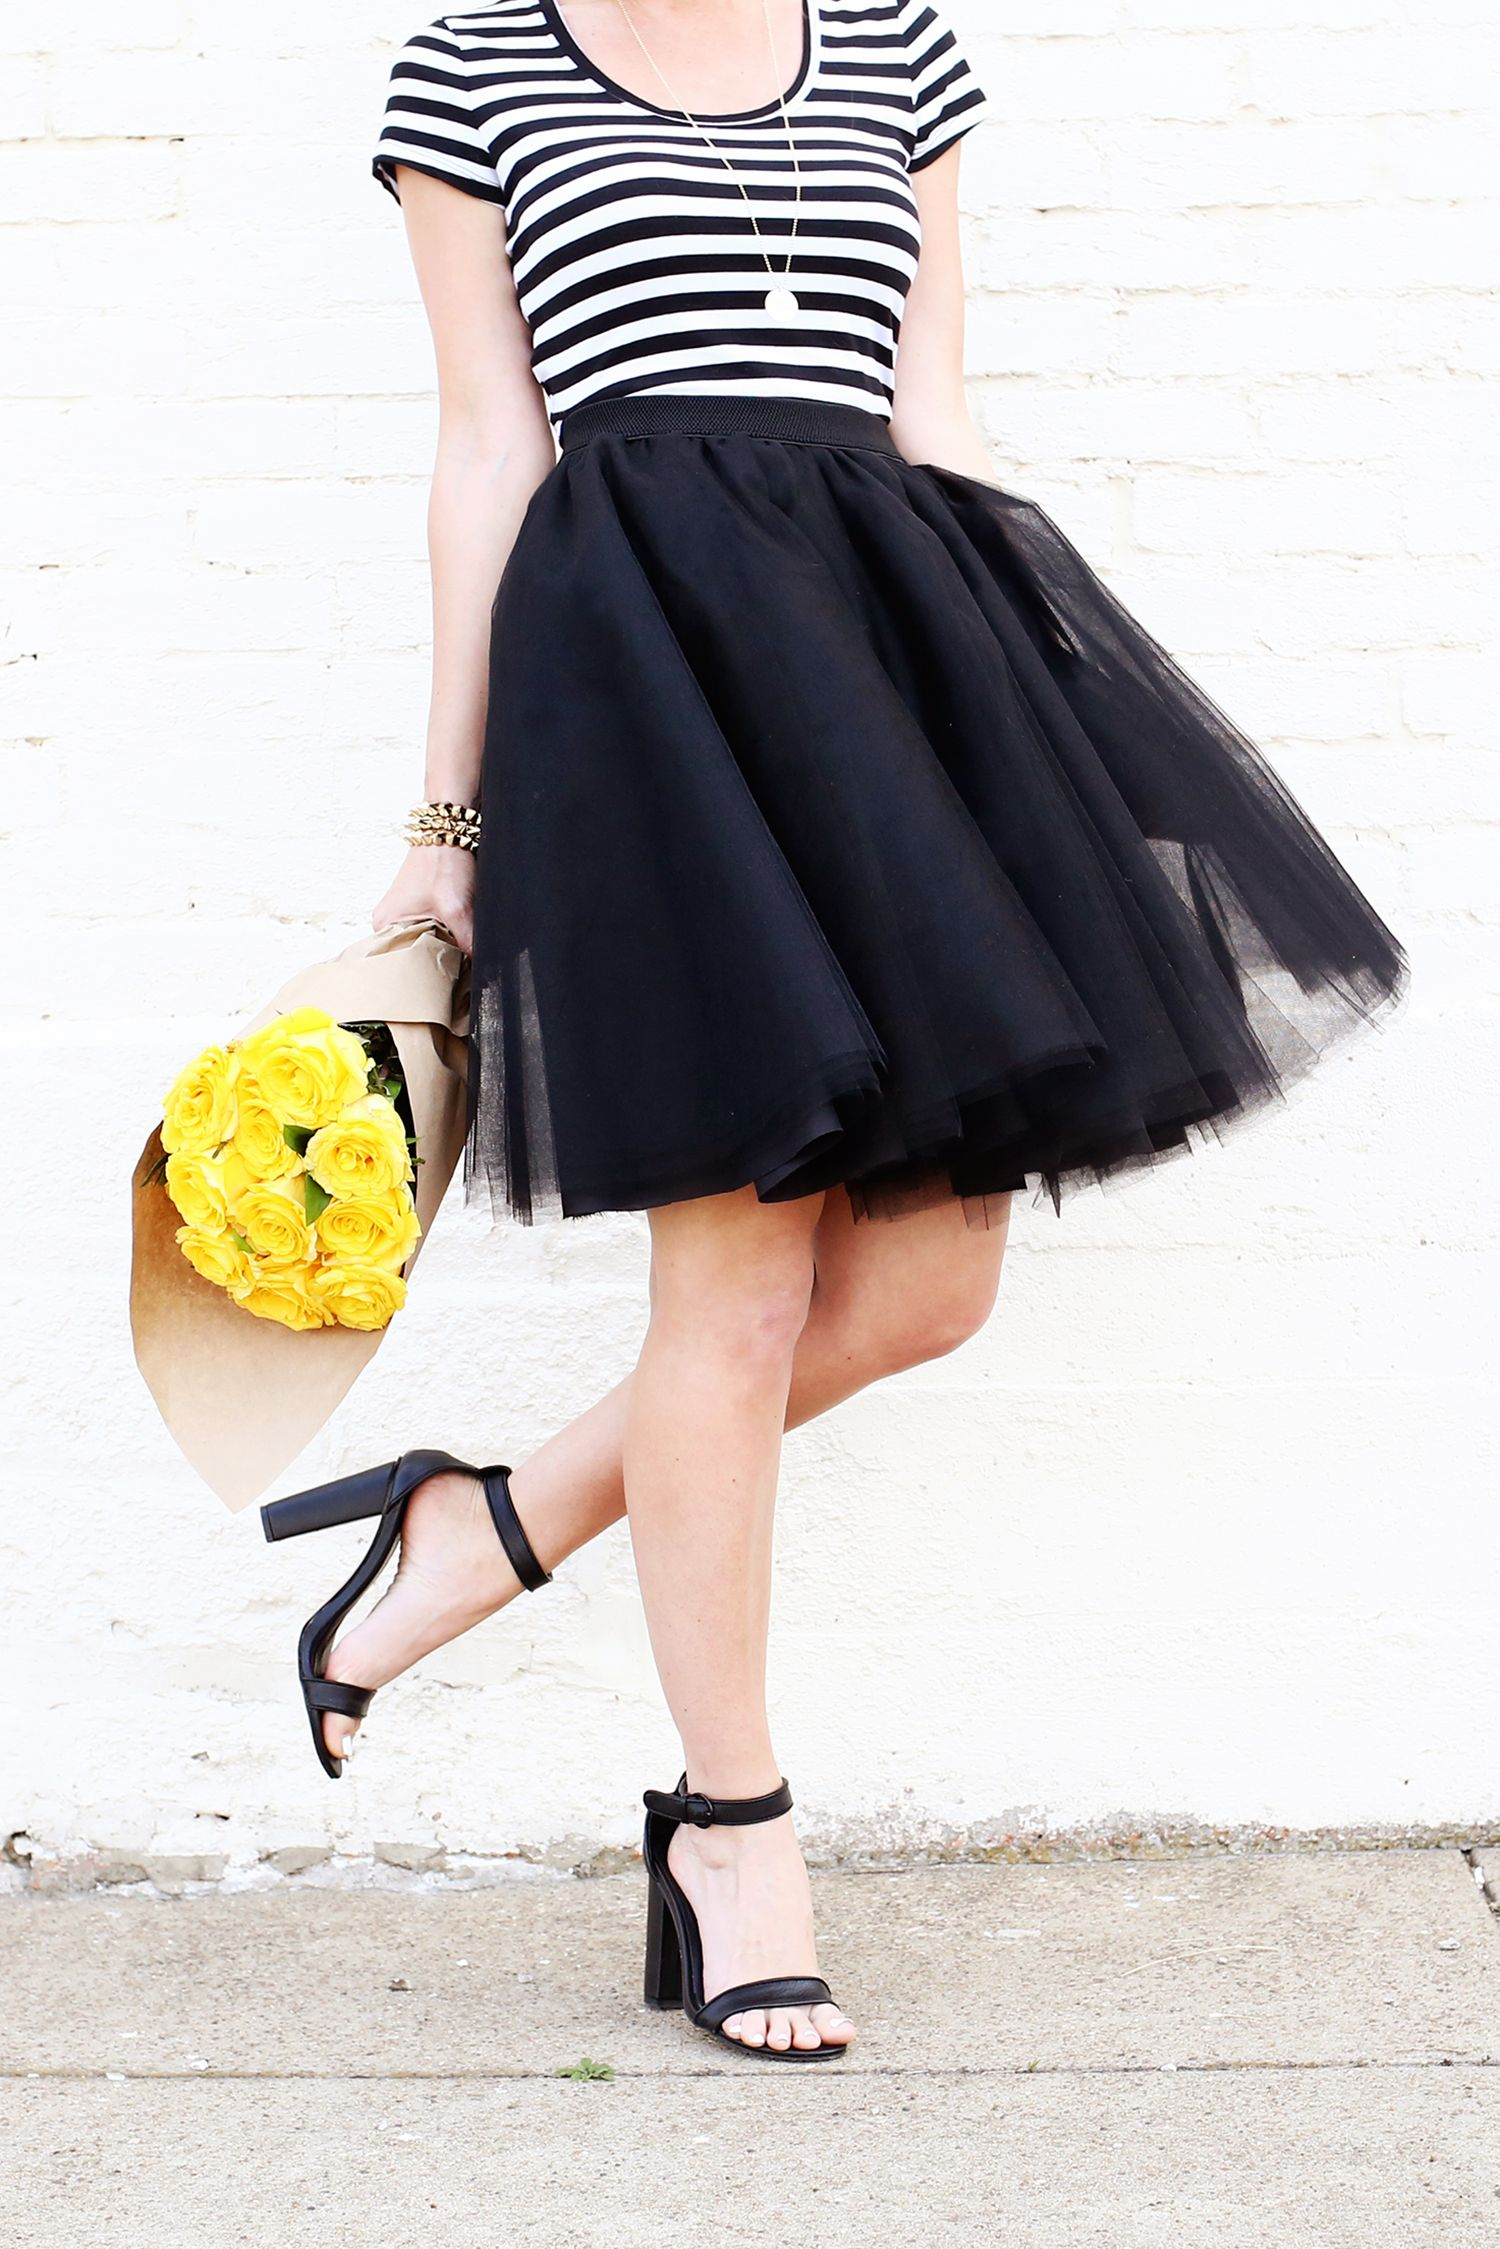 tulle skirt with black-and-white striped tank top